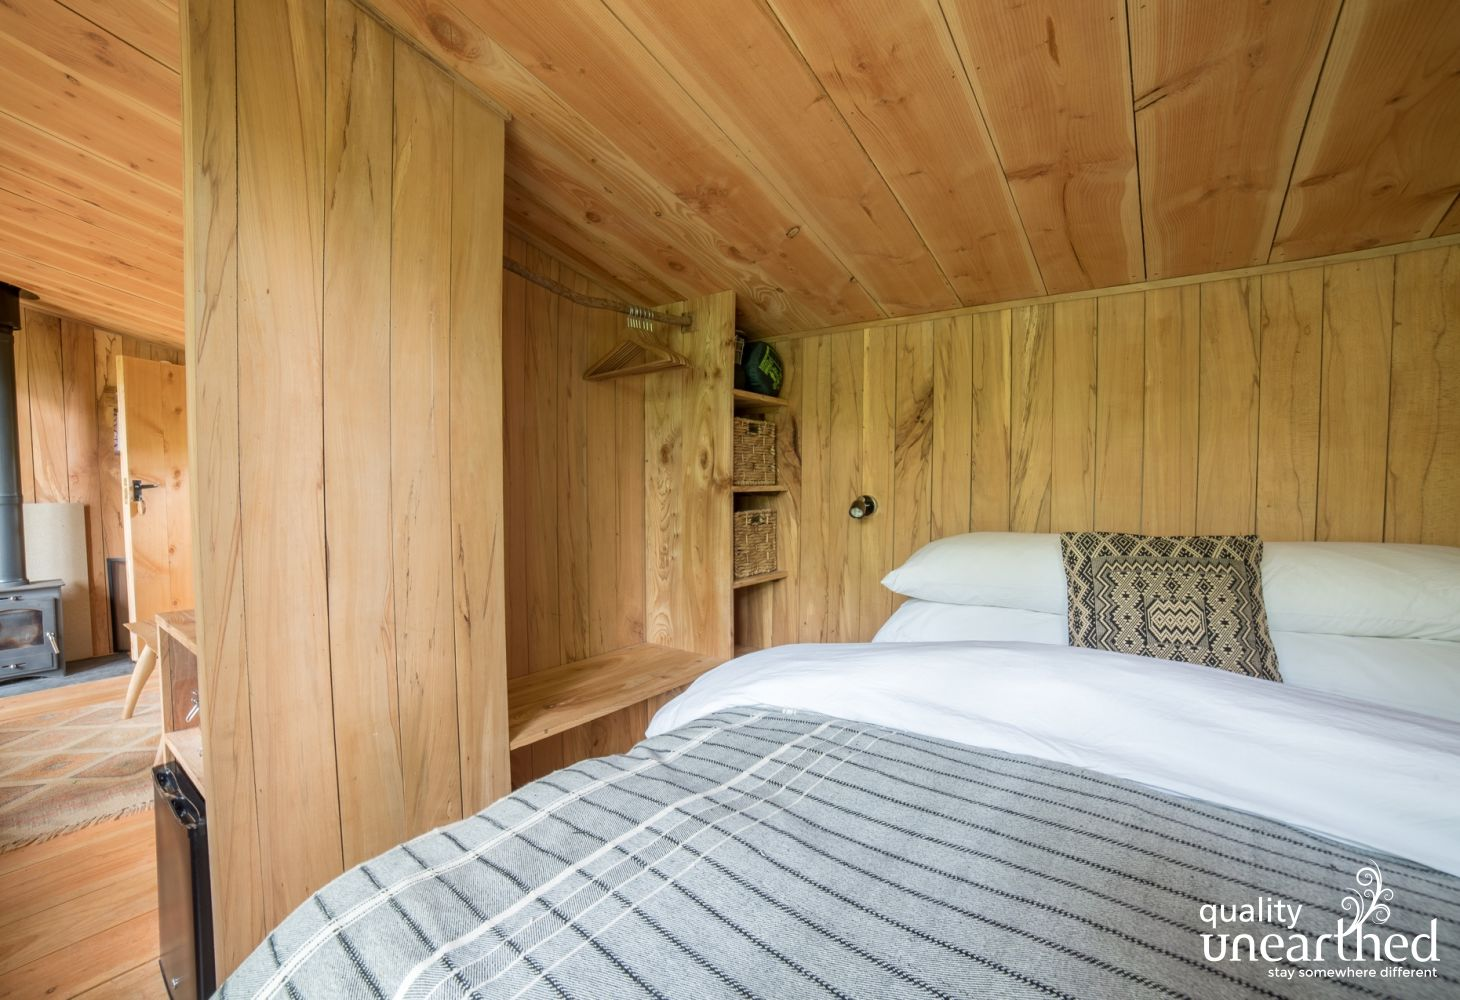 Contemporary spaces look like this. The walls of the treehouse for 3 are exposed so you can see the fine craftsmanship at the welsh treehouse